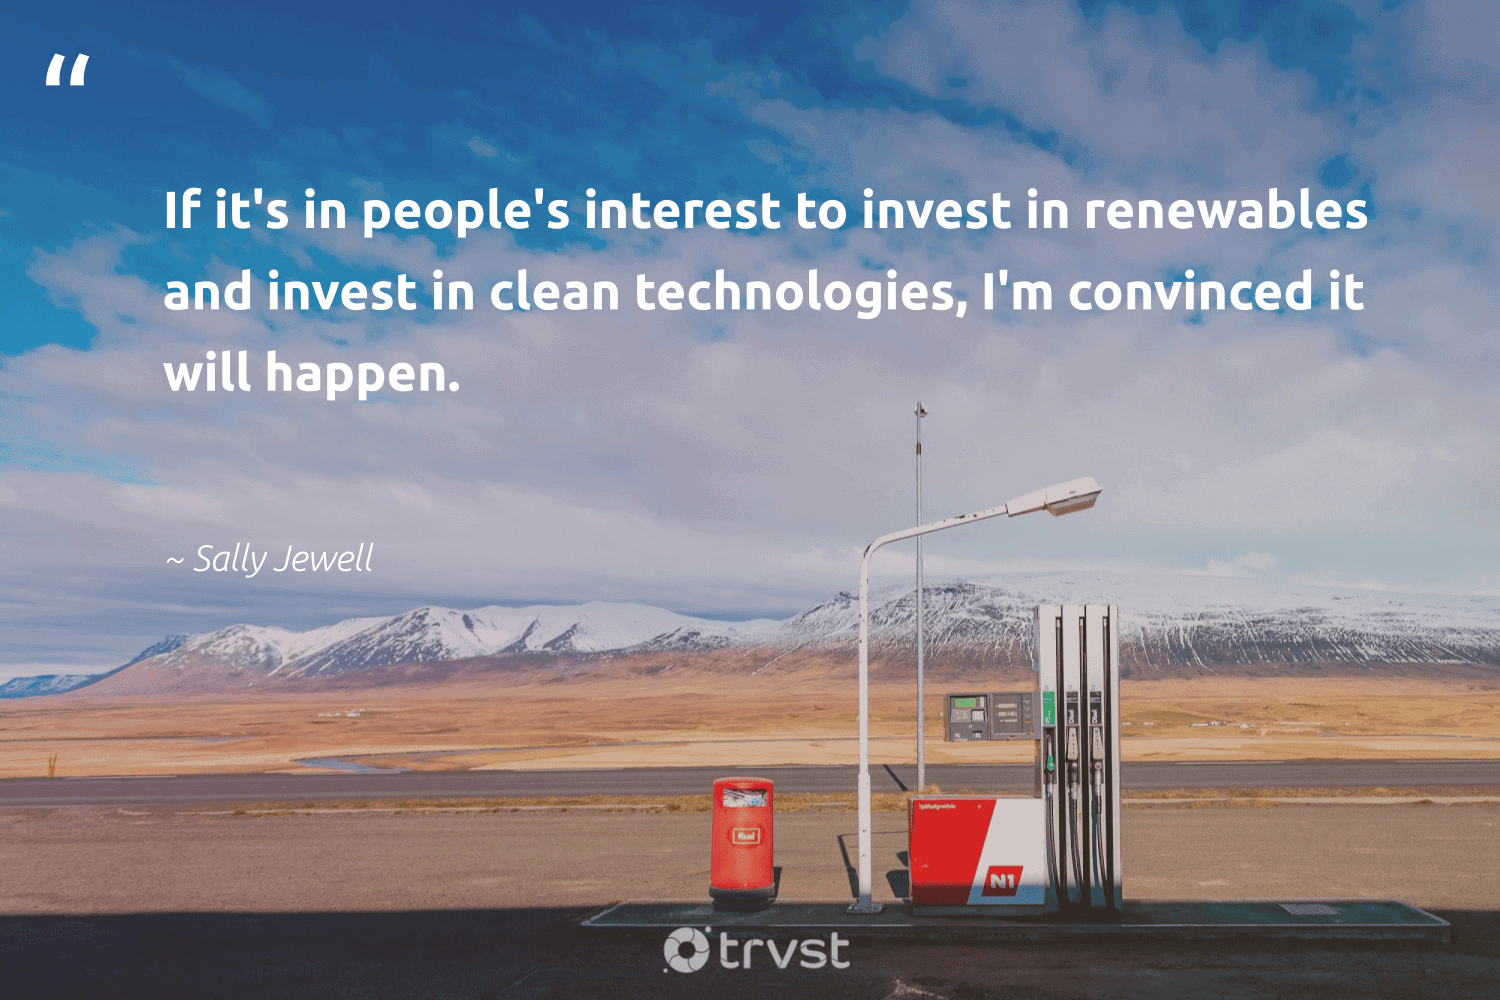 """""""If it's in people's interest to invest in renewables and invest in clean technologies, I'm convinced it will happen.""""  - Sally Jewell #trvst #quotes #renewableenergy #renewables #lowcarbon #climateaction #ecofriendly #takeaction #affordable #climatechange #actonclimate #socialchange"""